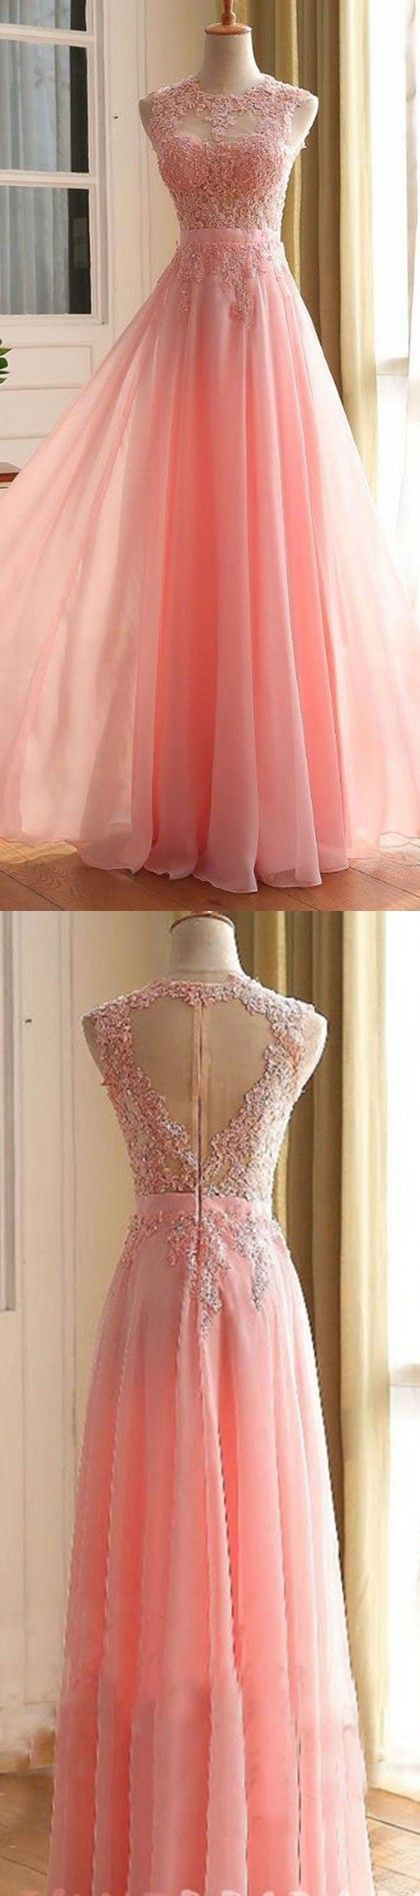 Charming Long Prom Dress, Appliques Pink Prom Dress,Elegant Prom Dress,Long Evening Dress,Formal Gown by fancygirldress, $159.00 USD